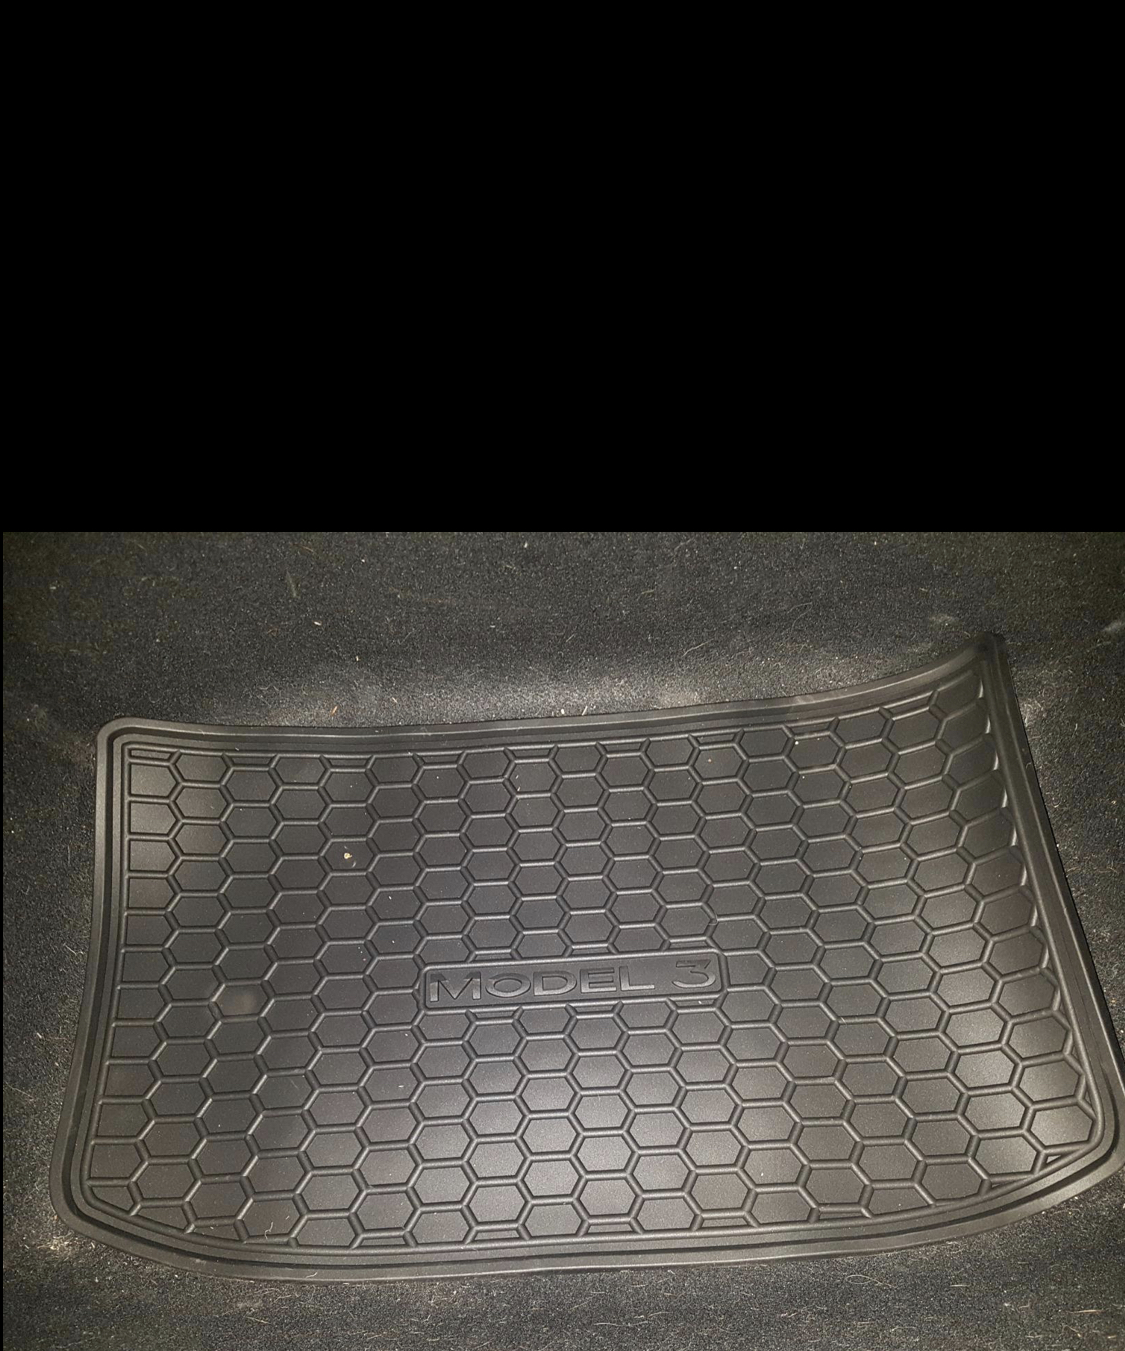 Model 3 mats customer photo3